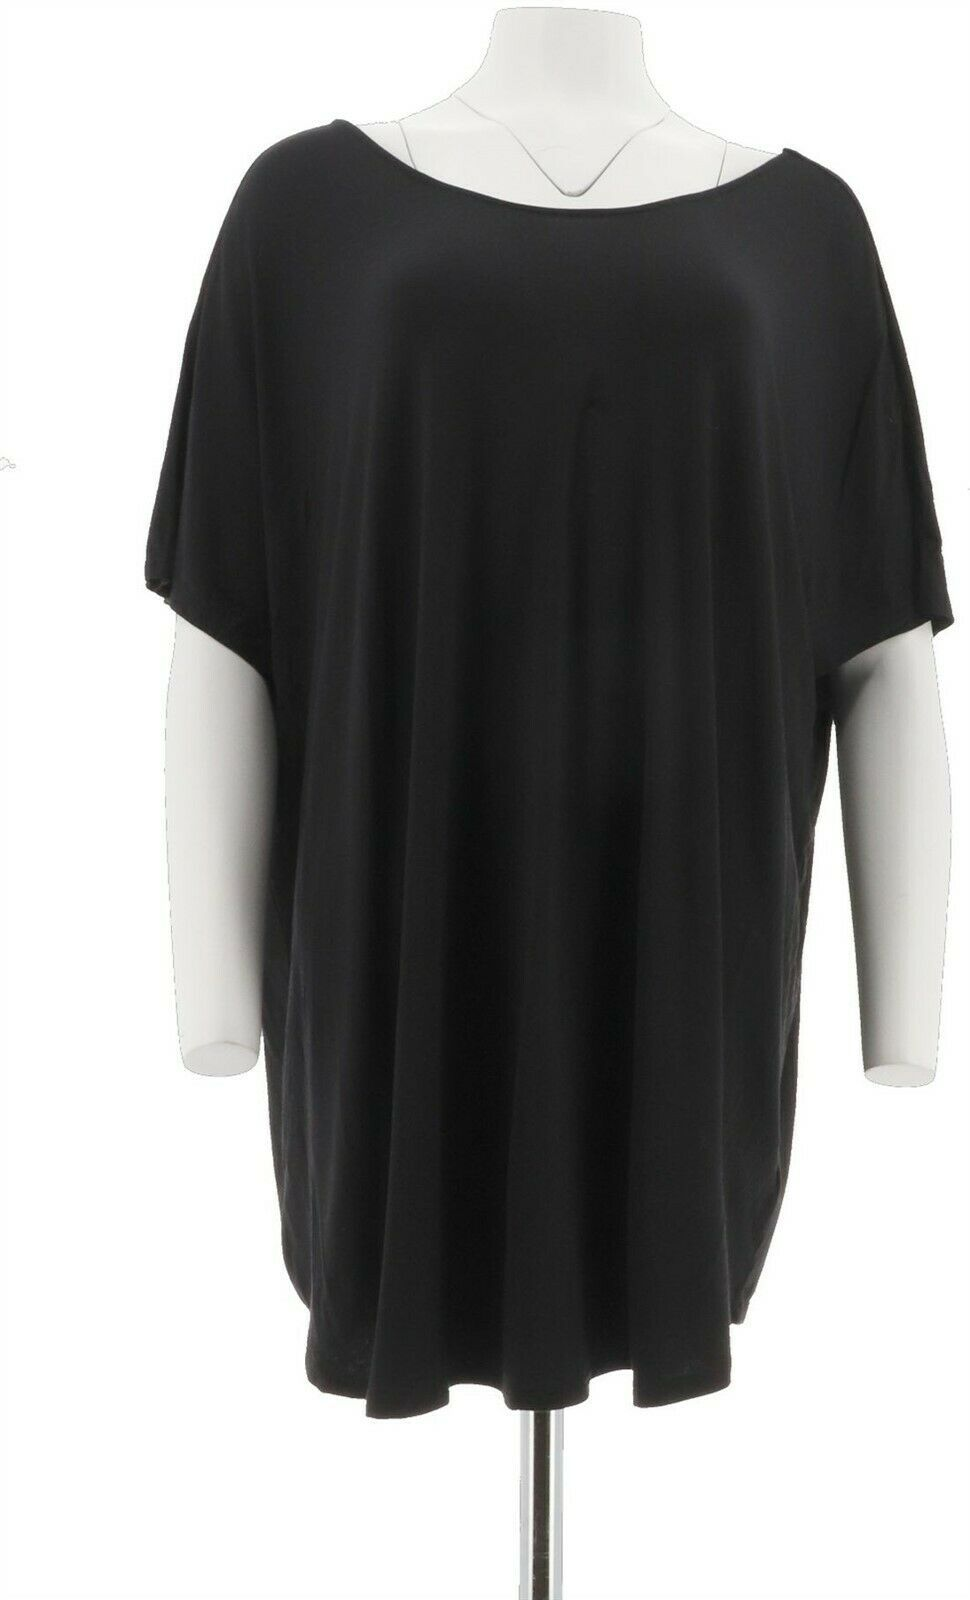 Primary image for Du Jour Extended Shoulder Curved Hem Knit Top Black 2X NEW A293733